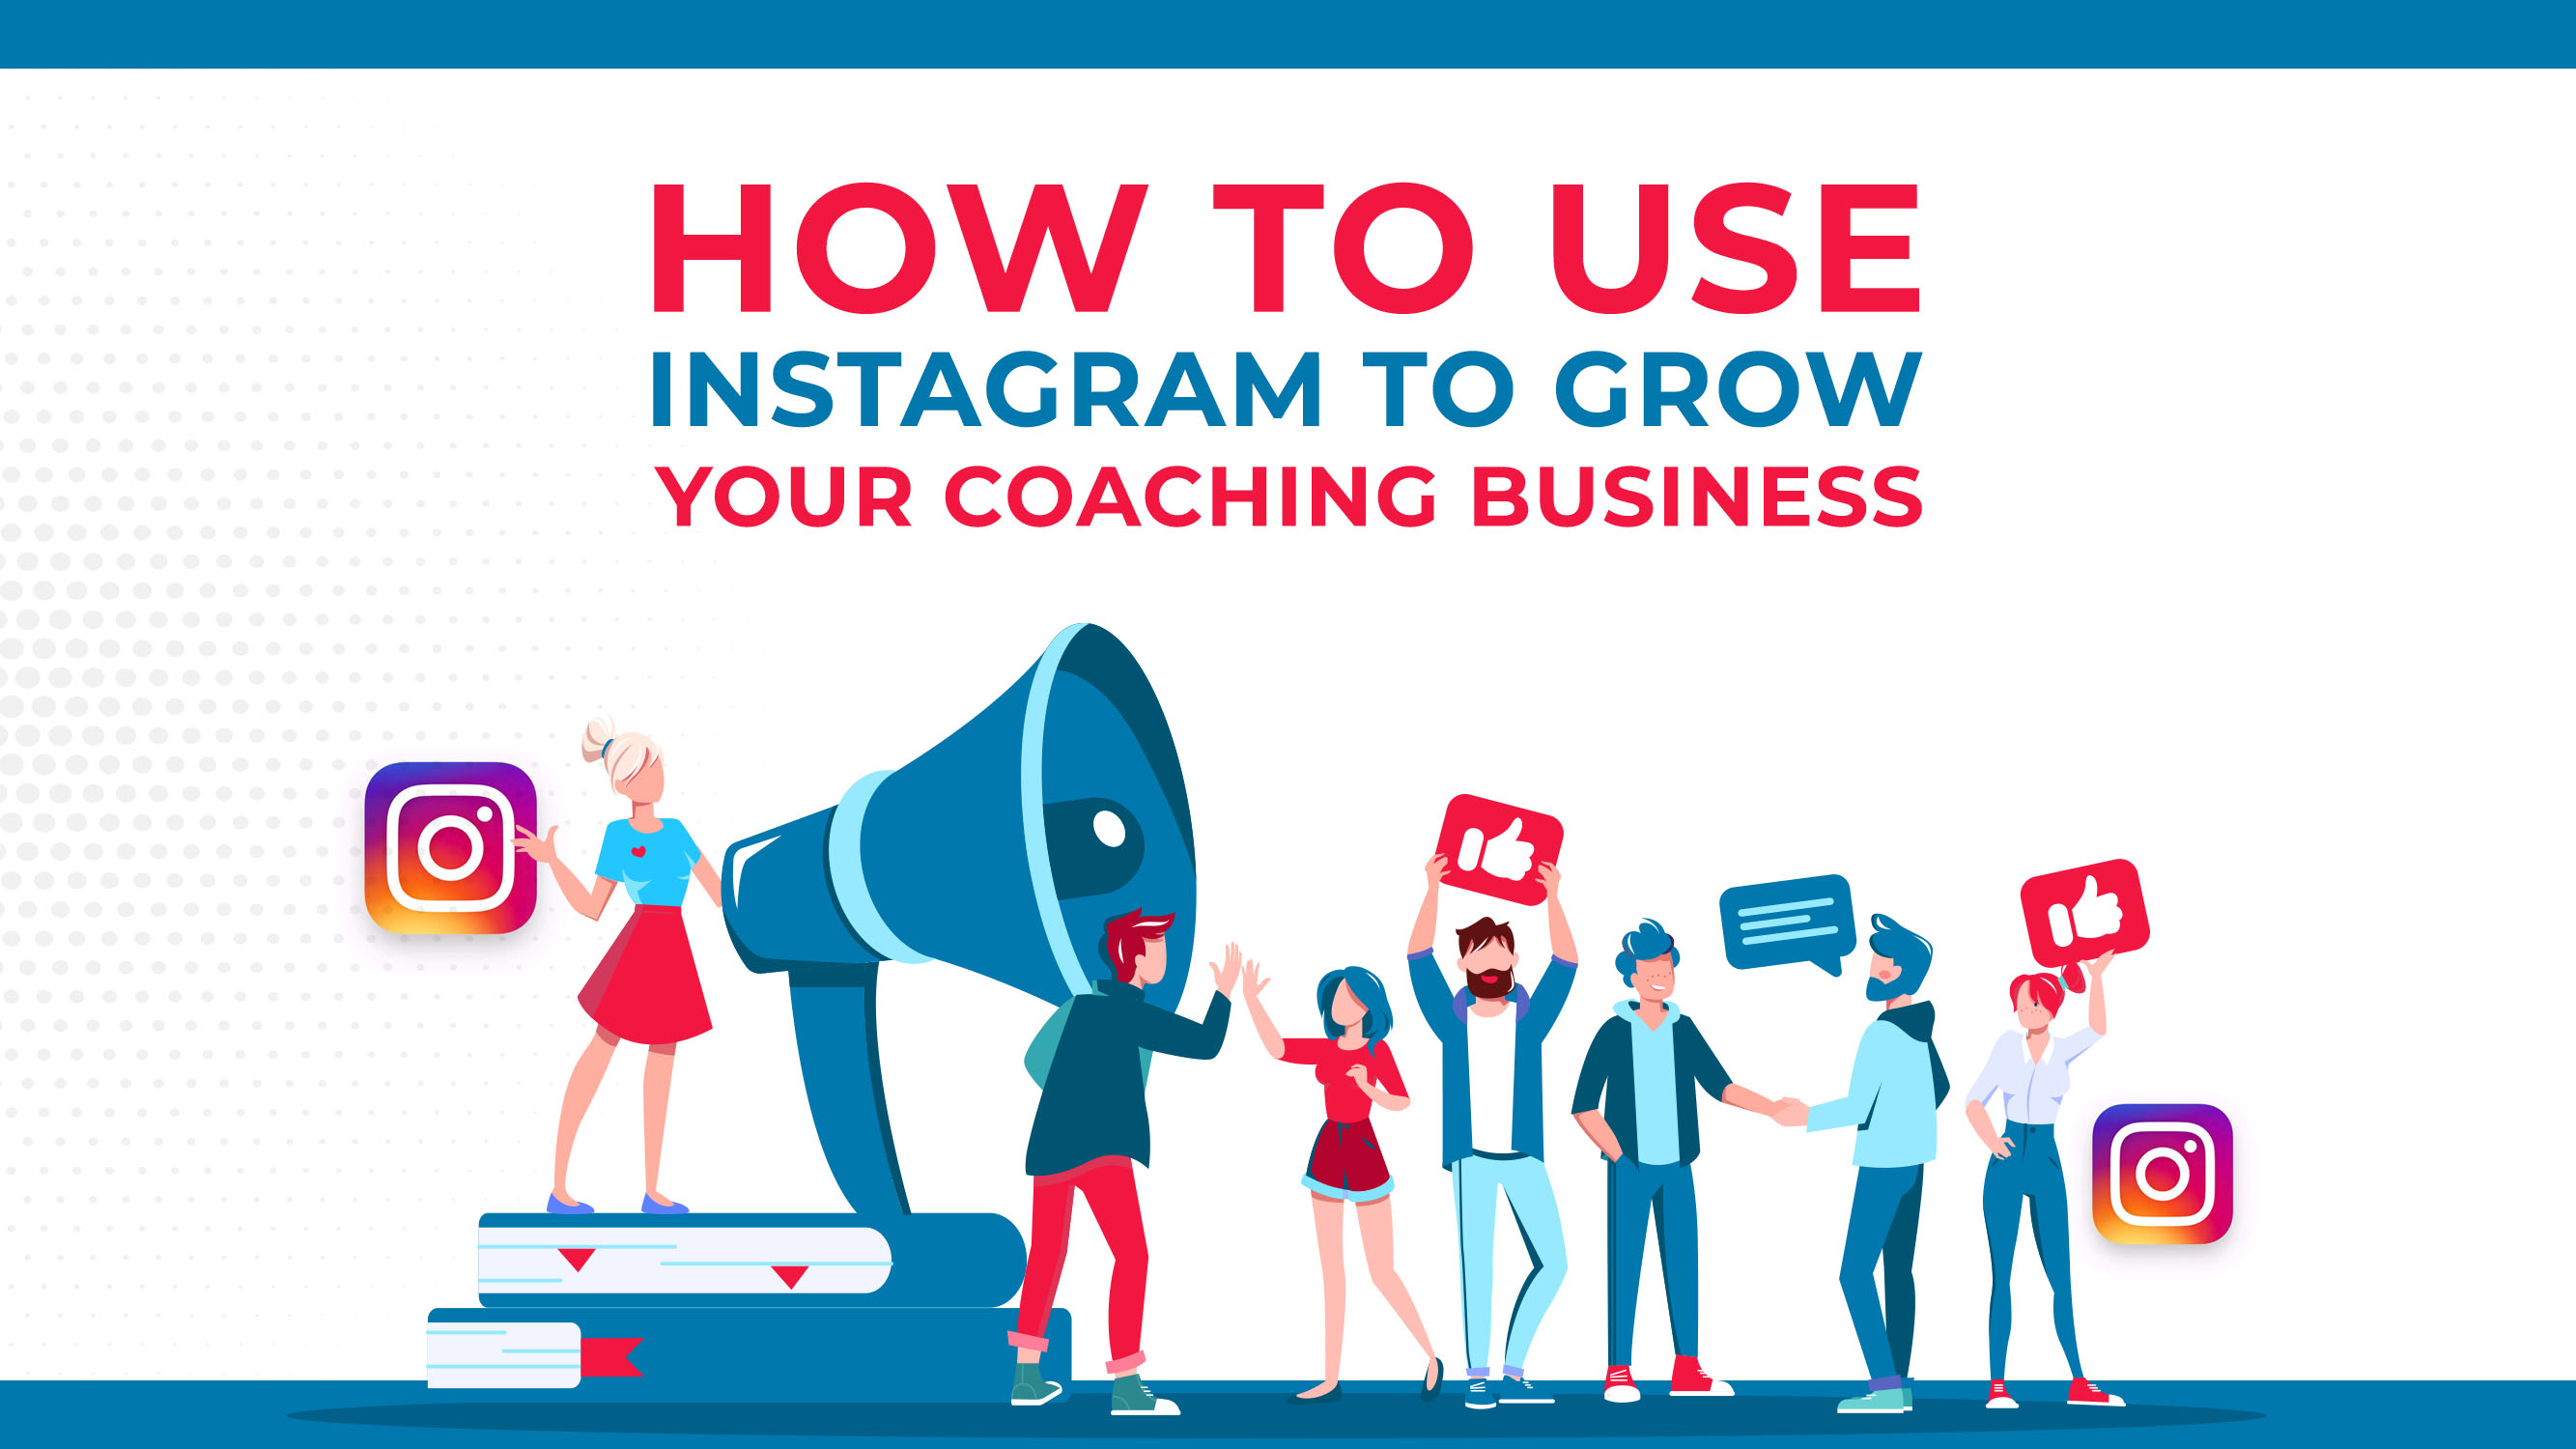 How To Use Instagram To Grow Your Coaching Business